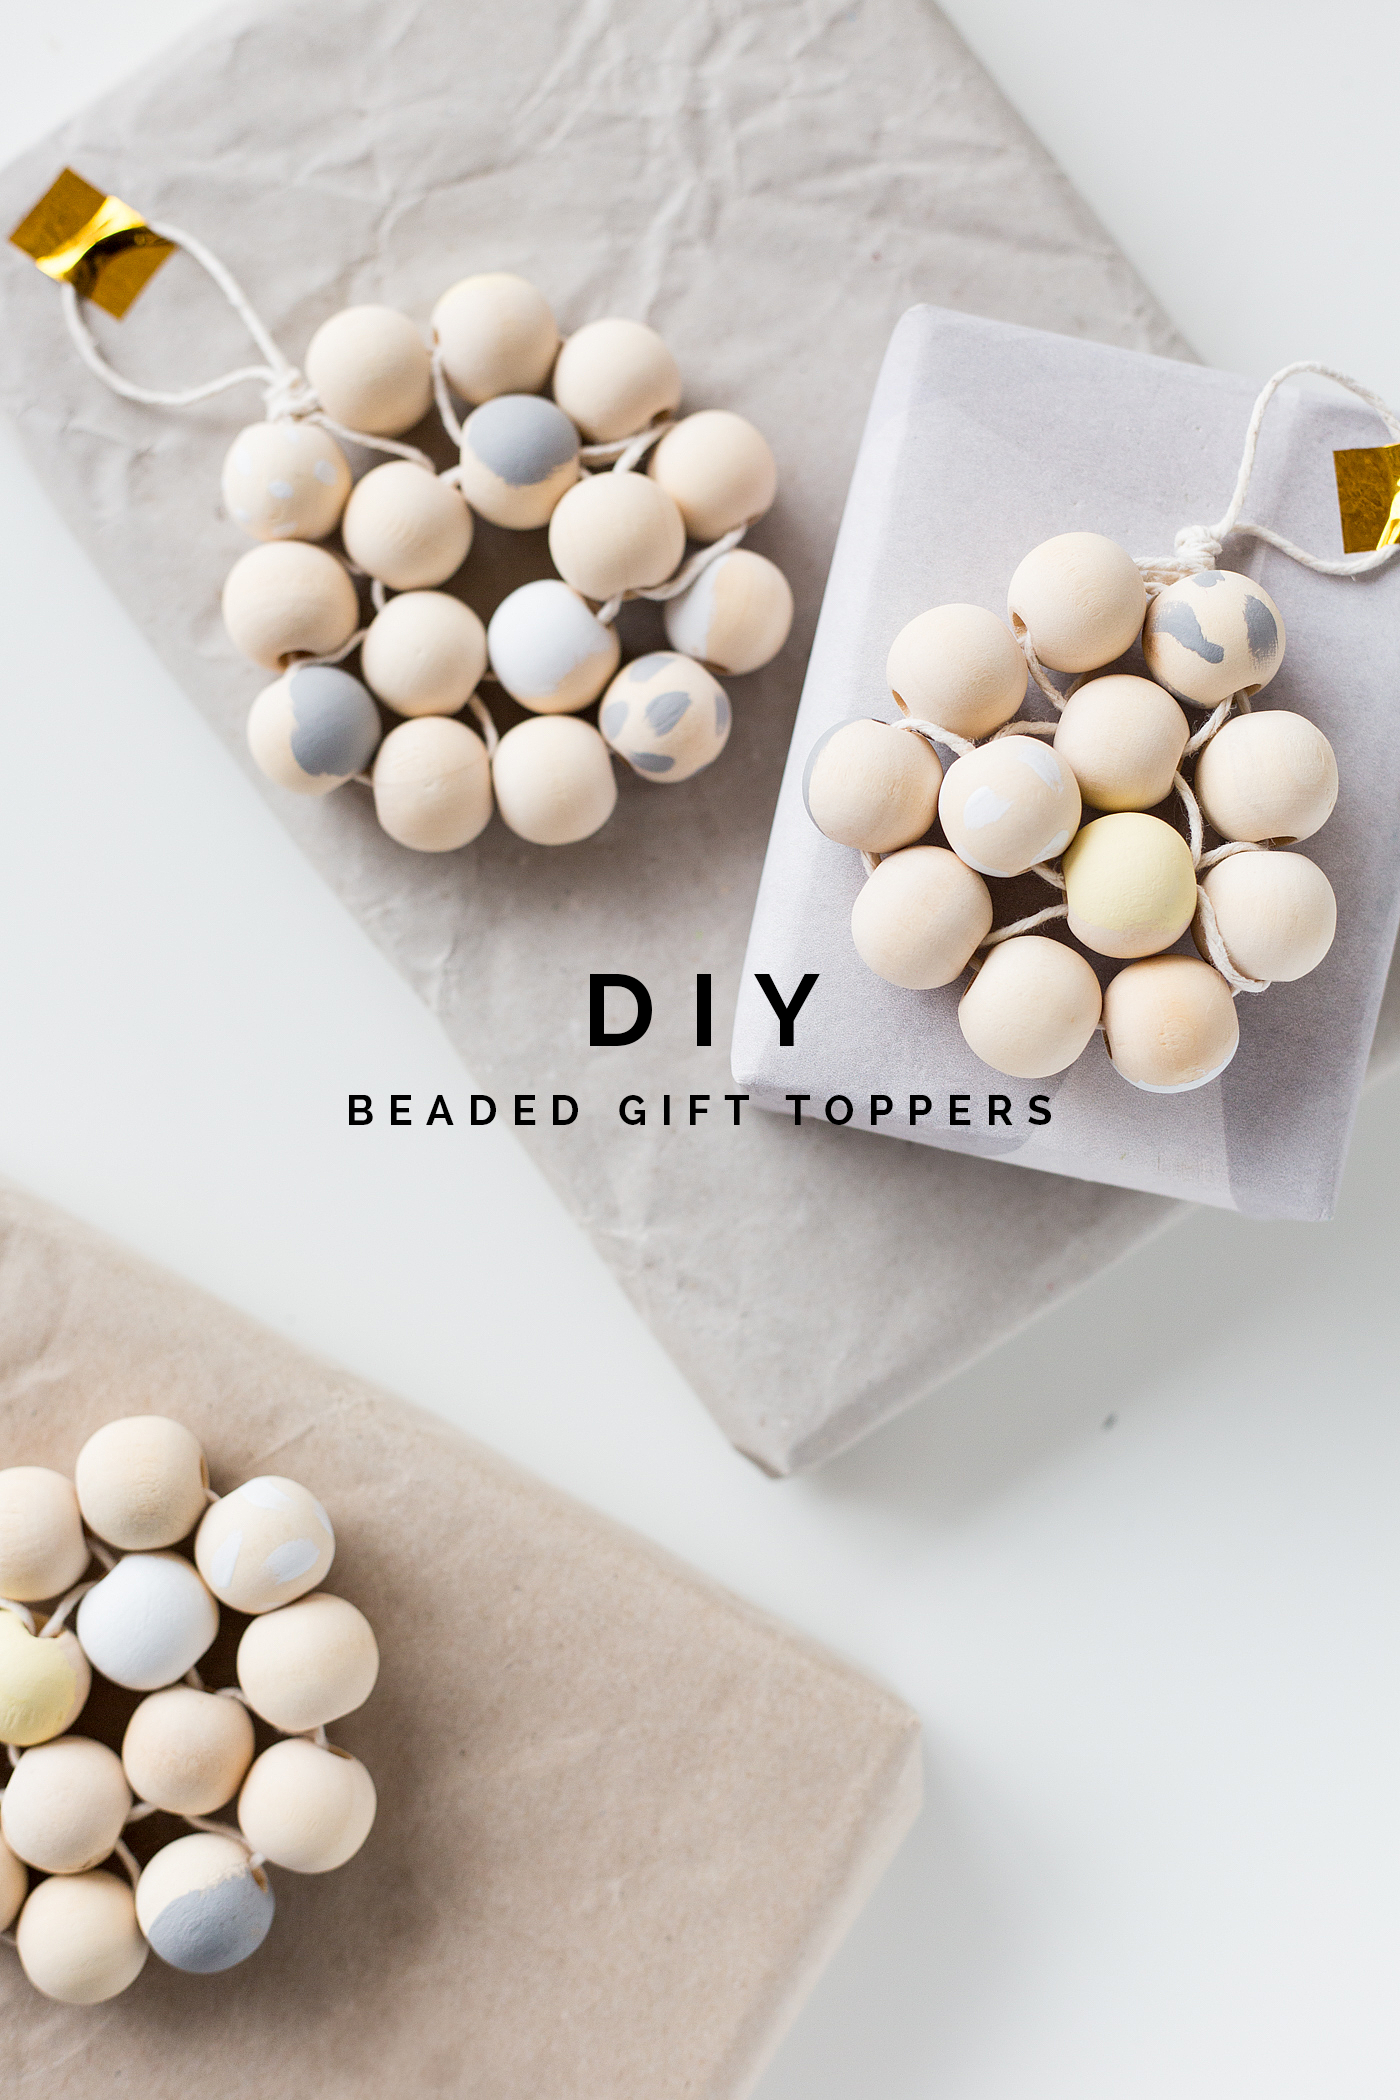 DIY Beaded Gift Toppers with Dulux | @fallfordiy